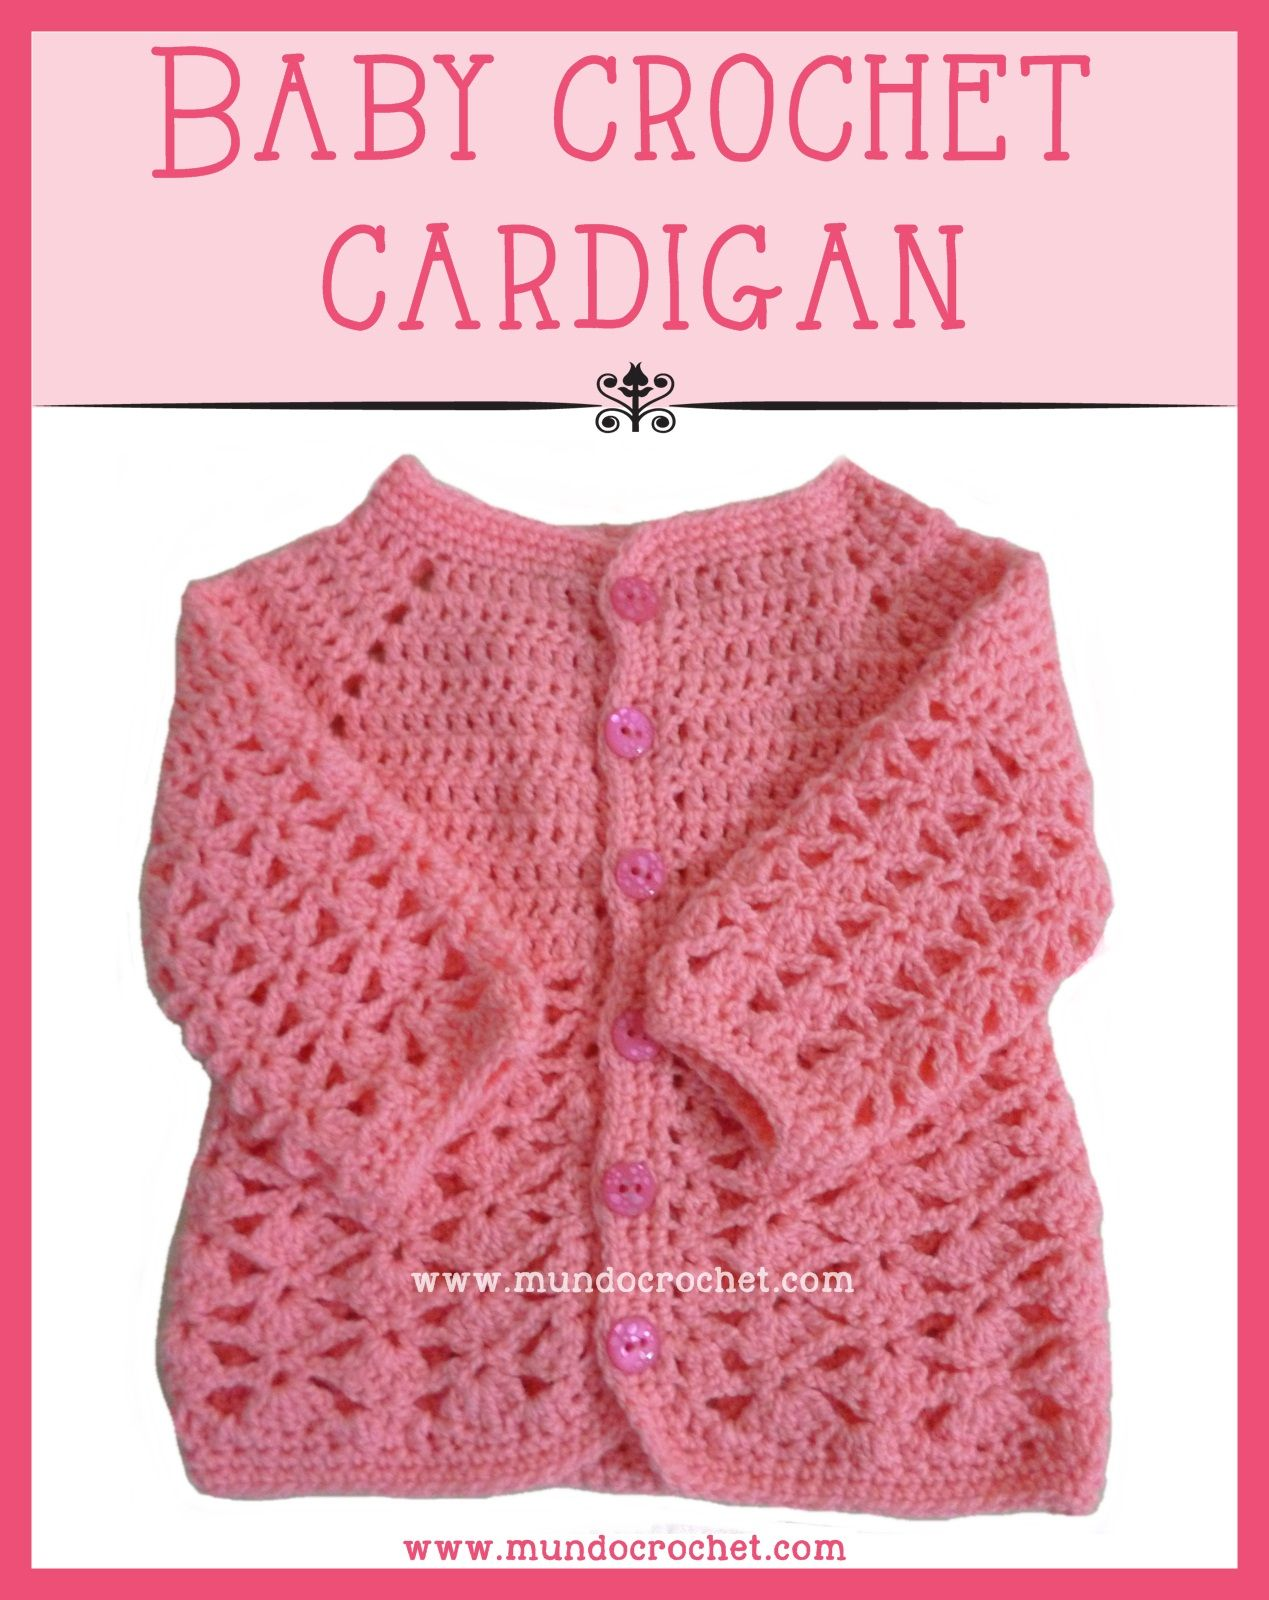 Baby crochet cardigan or sweater free pattern from mundocrochet baby crochet cardigan or sweater free pattern from mundocrochet bankloansurffo Image collections